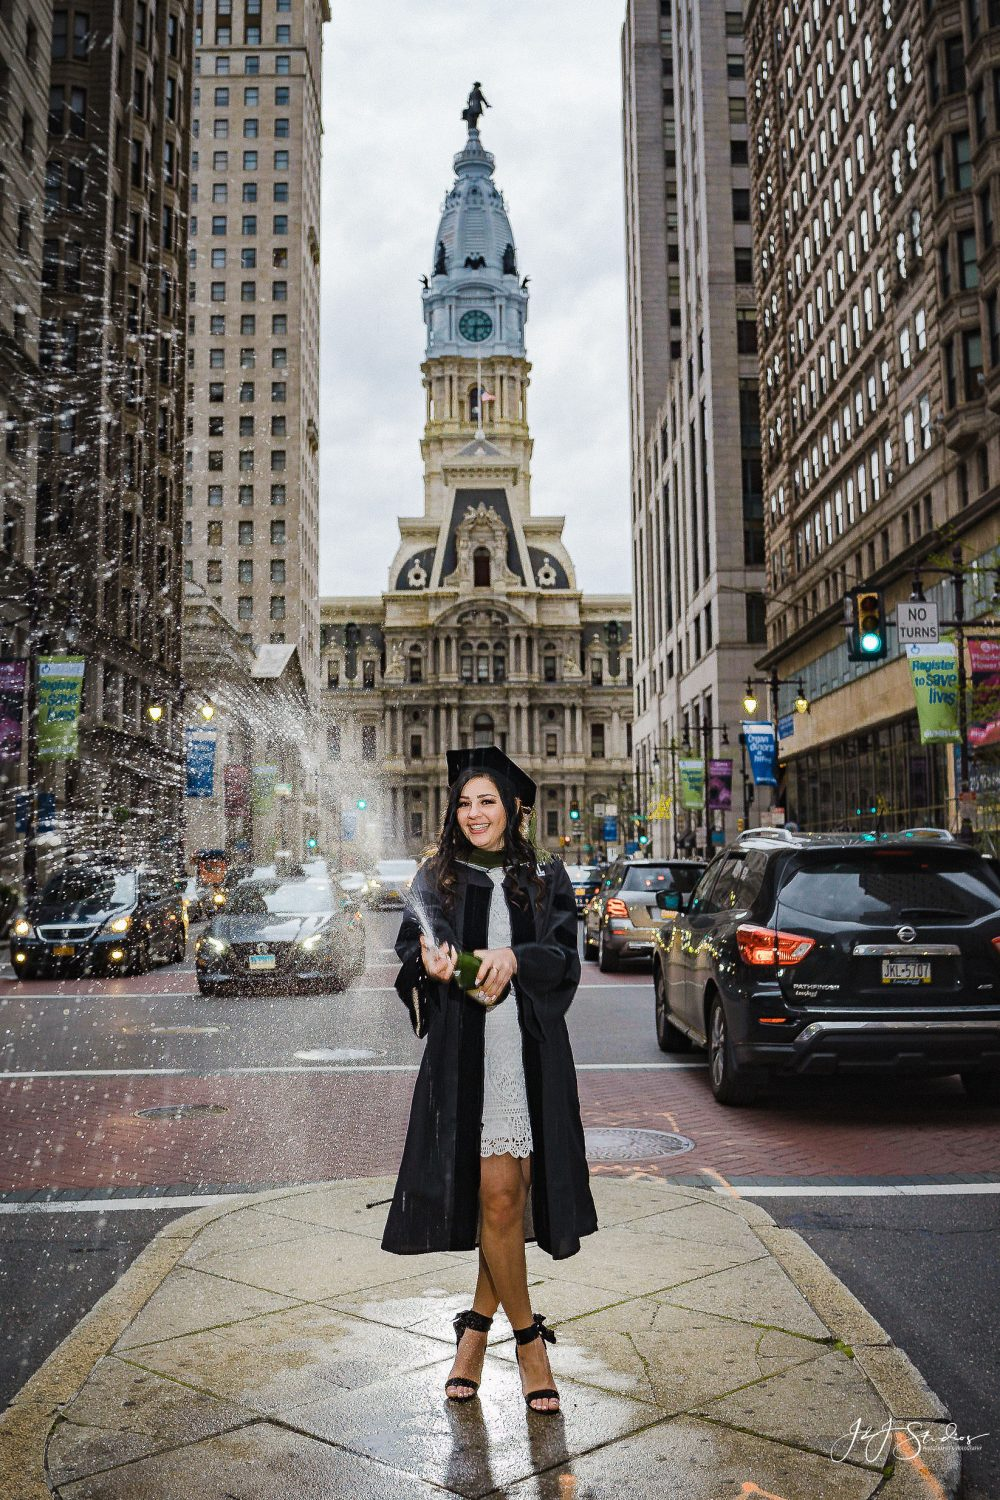 Dena downtown Philly Temple University Commencement